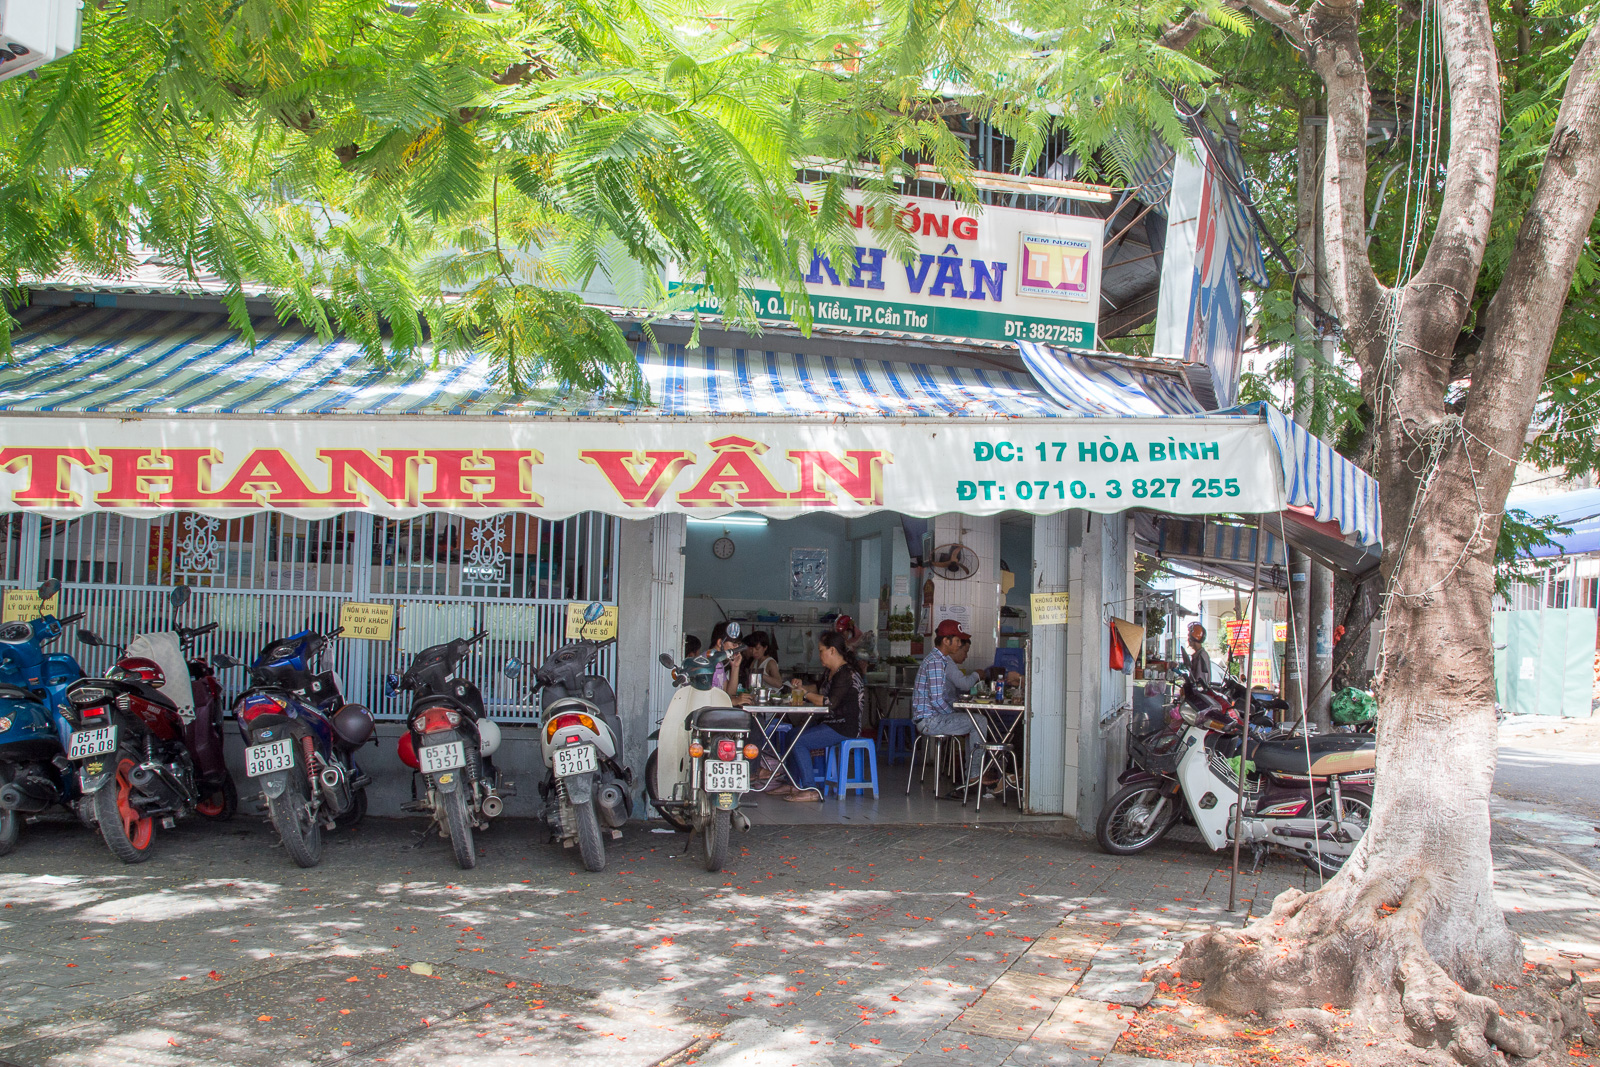 Just drive on up and the porter will take care of your scooter at Thanh Van.